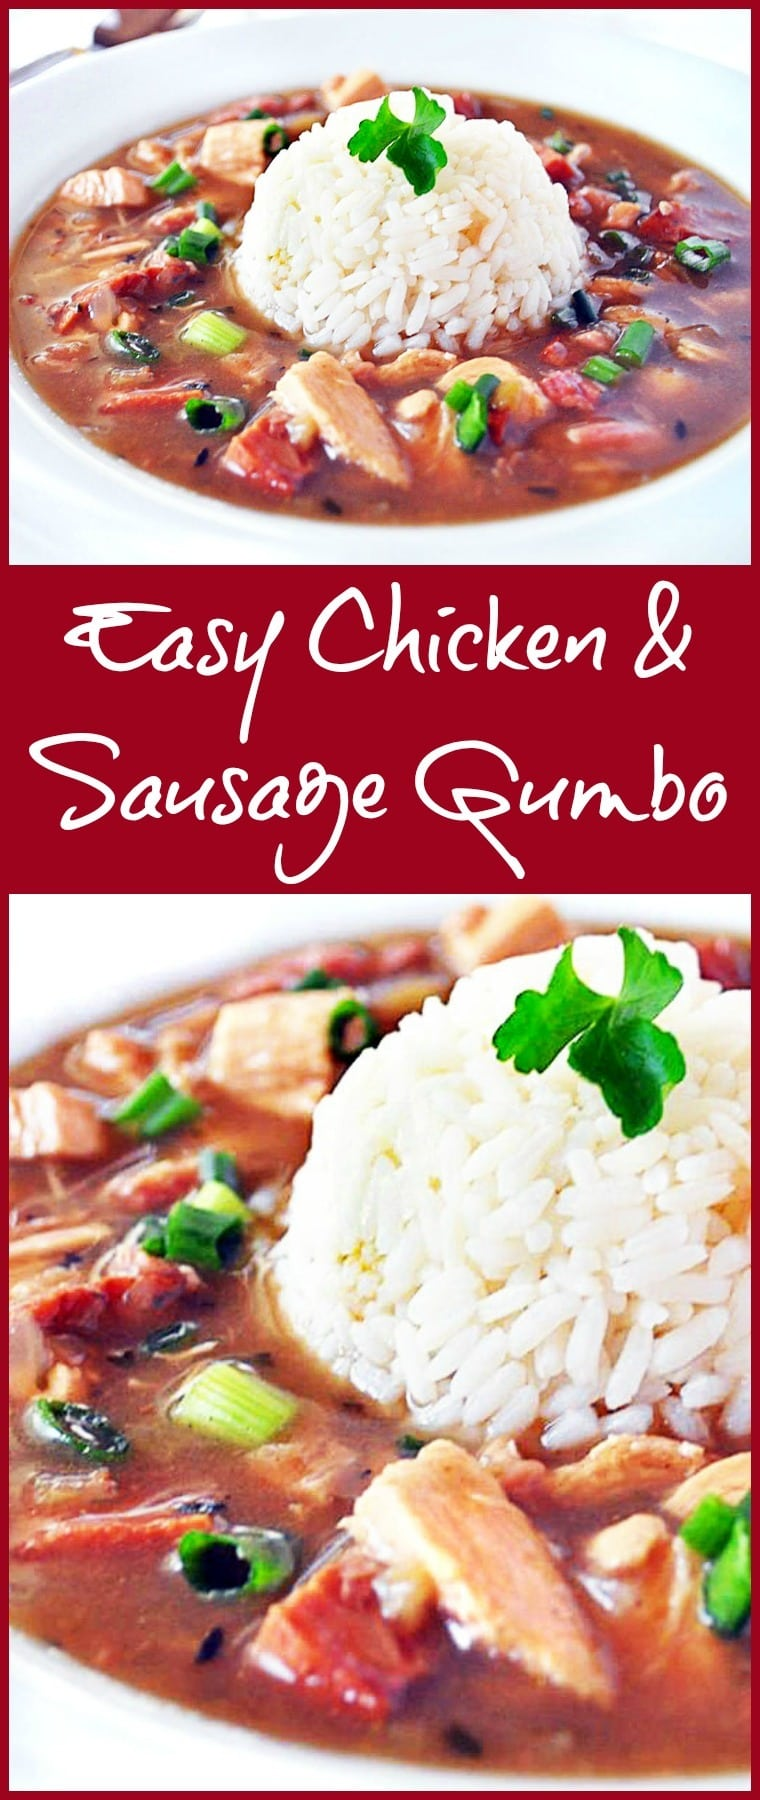 Looking for an Easy Chicken and Sausage Gumbo Recipe that's also healthy? Try this spicy Cajun gumbo recipe from This Mama Cooks! On a Diet and Holly Clegg.